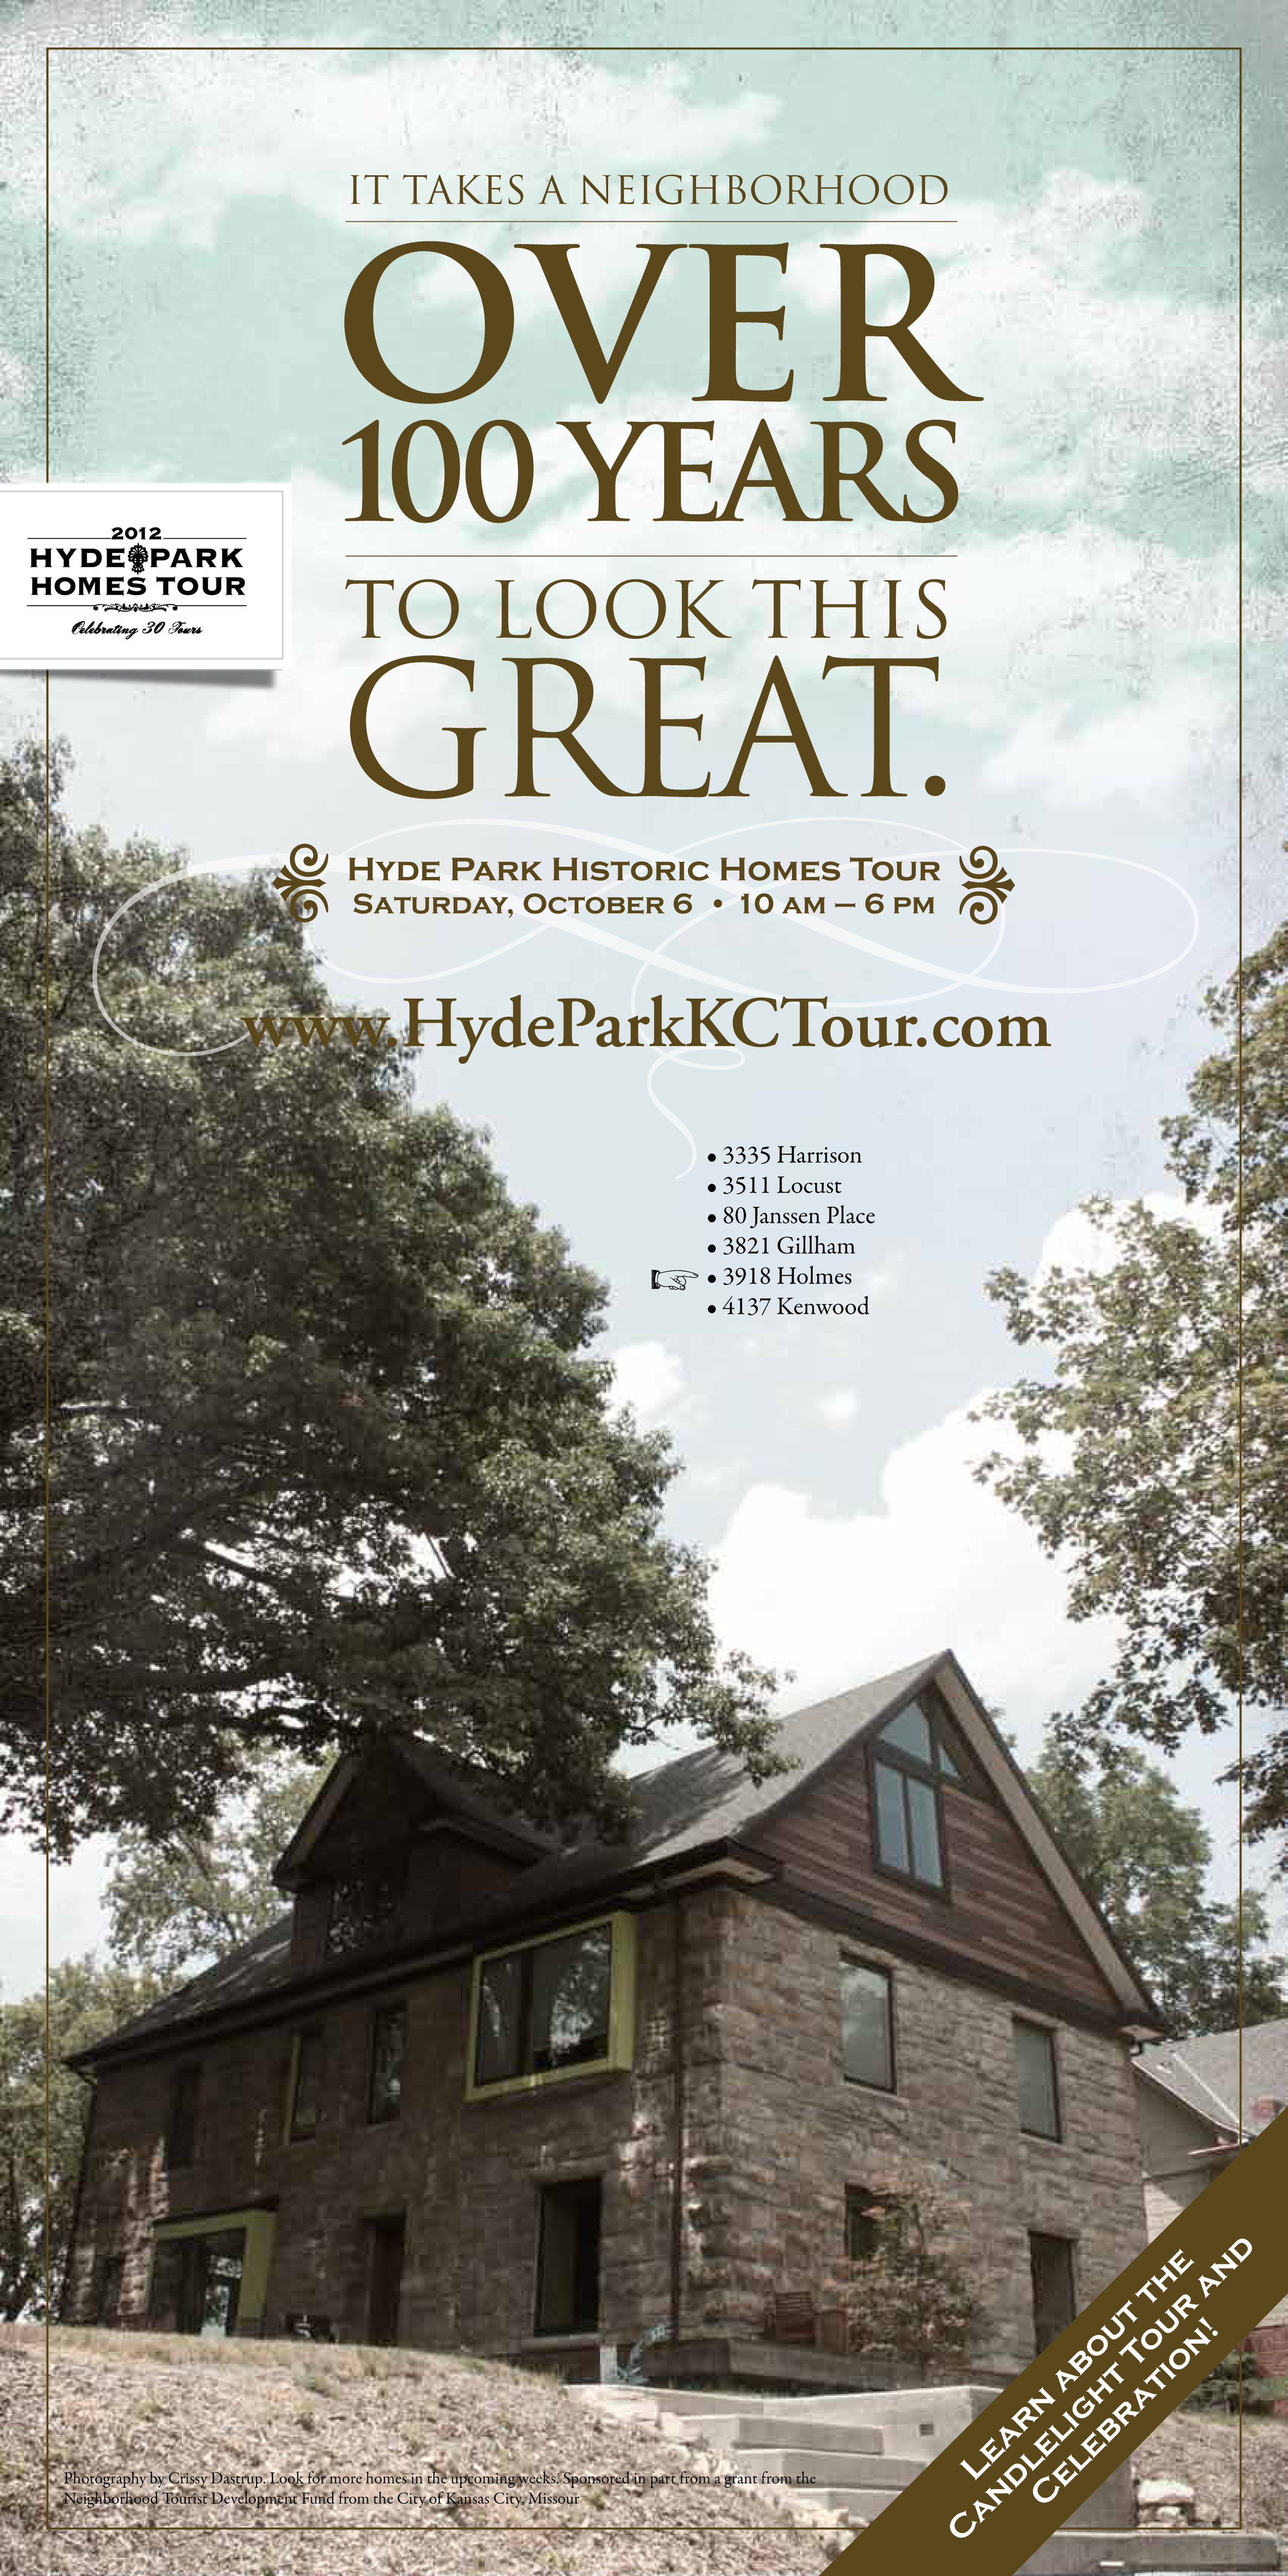 Homes Tour Flyer 5.jpg